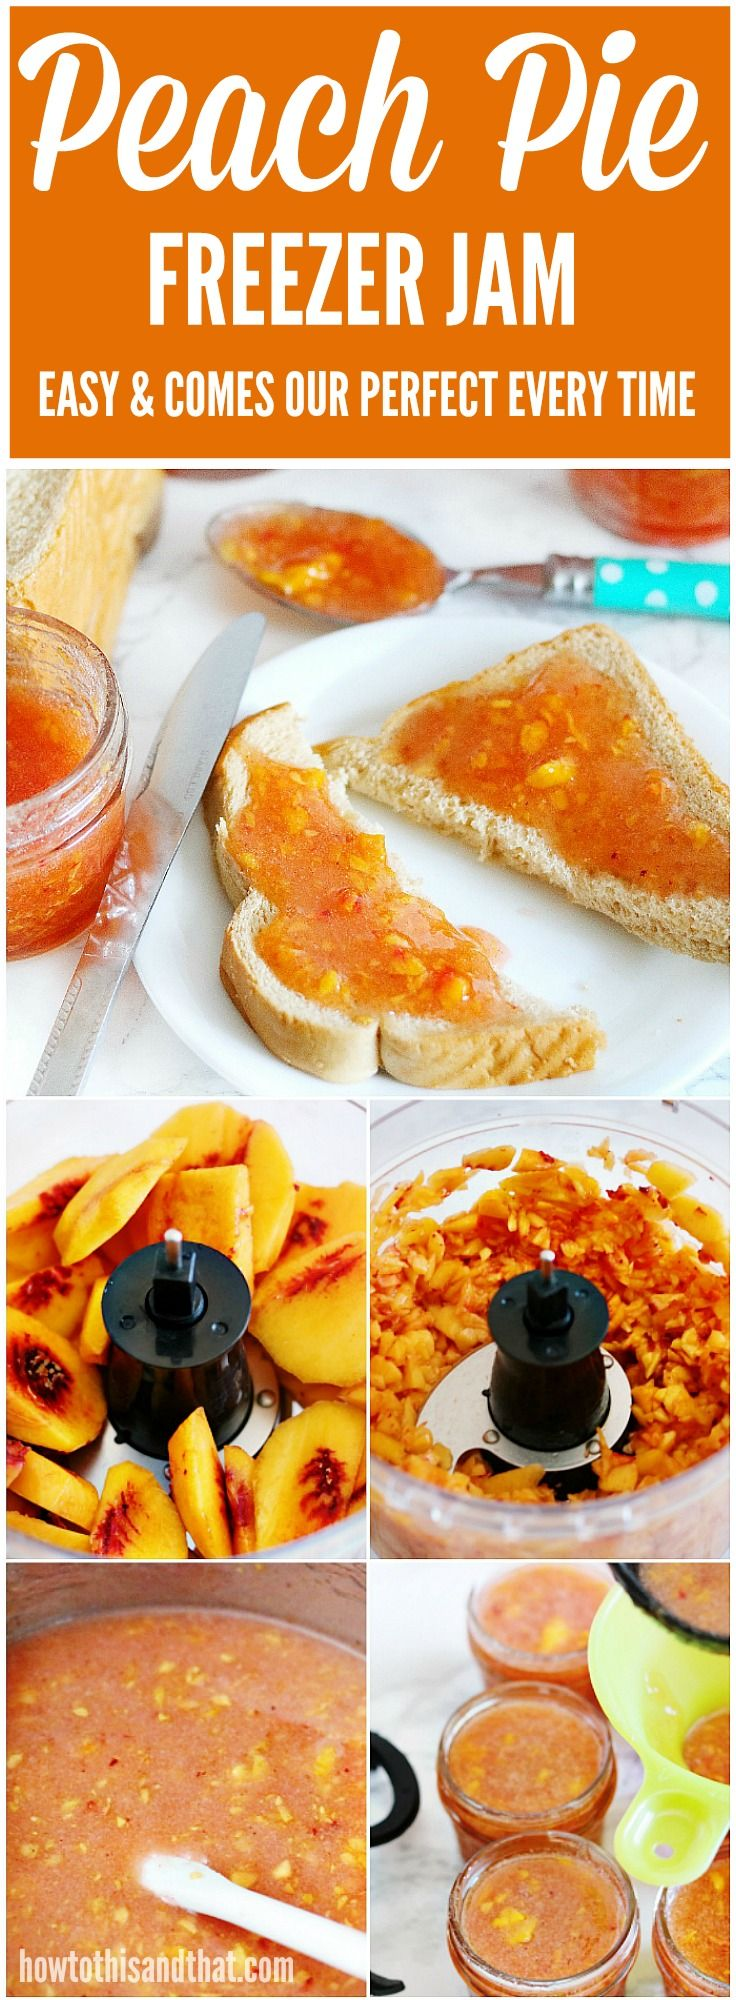 Easy , quick and no canning involved!  Enjoy peach jam all winter long with this freezer jam recipe.